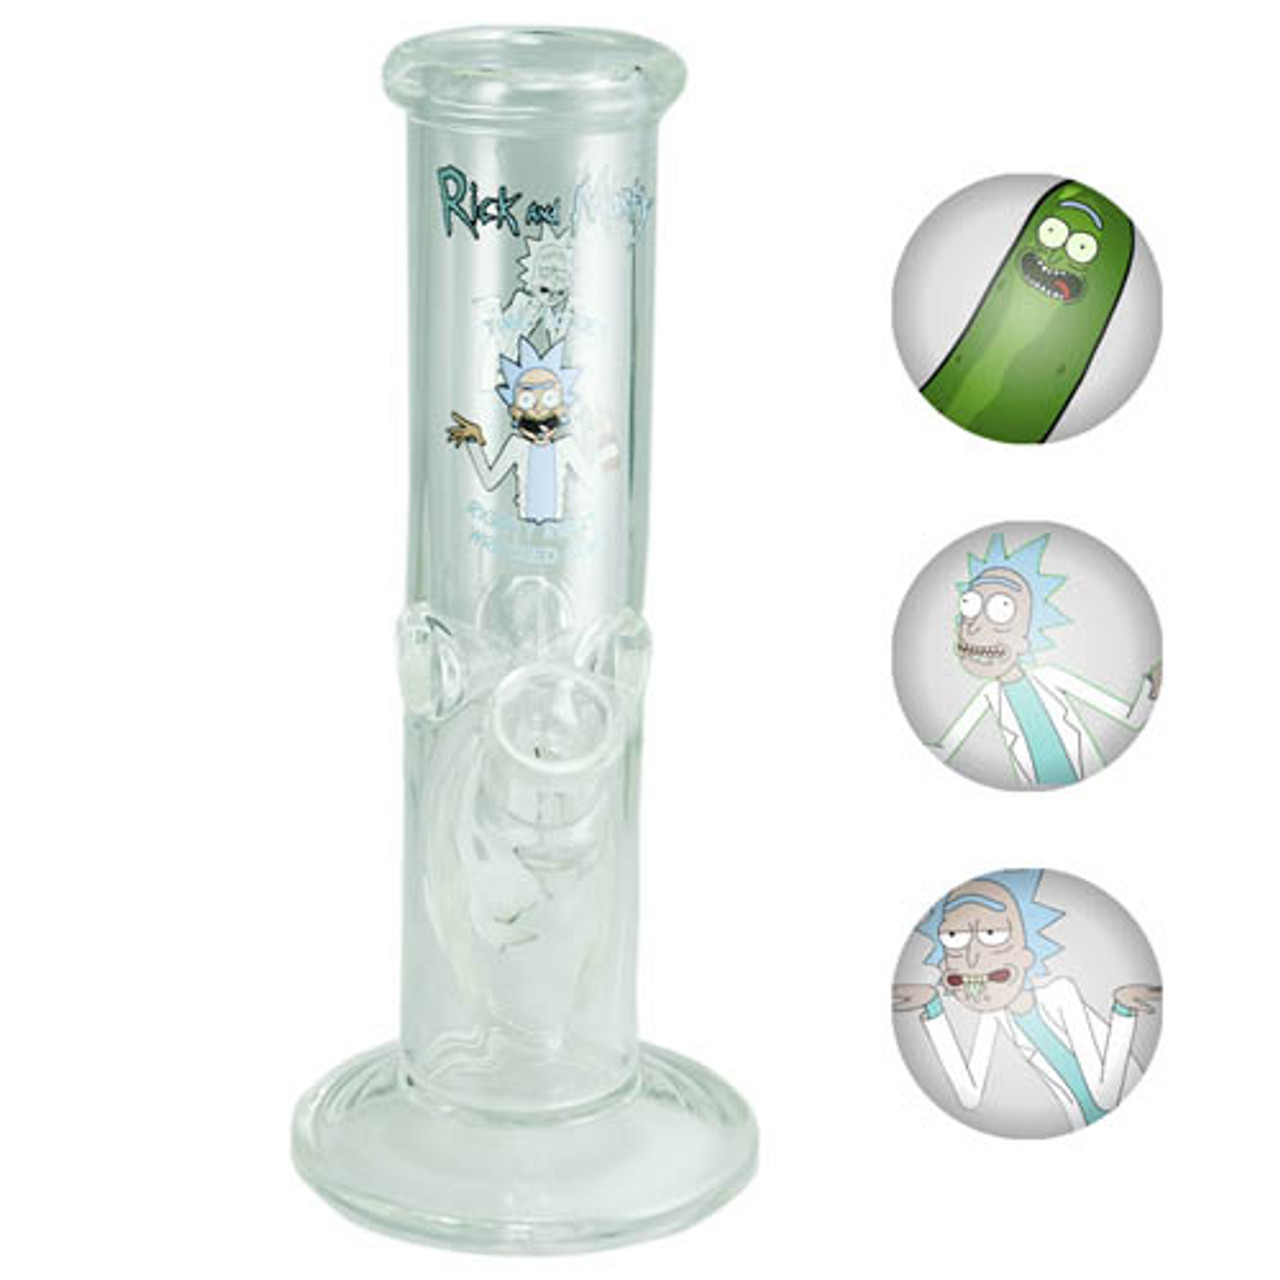 "Rick & Morty 9"" Straight Tube Assorted Decal w/ Ice Pinch"